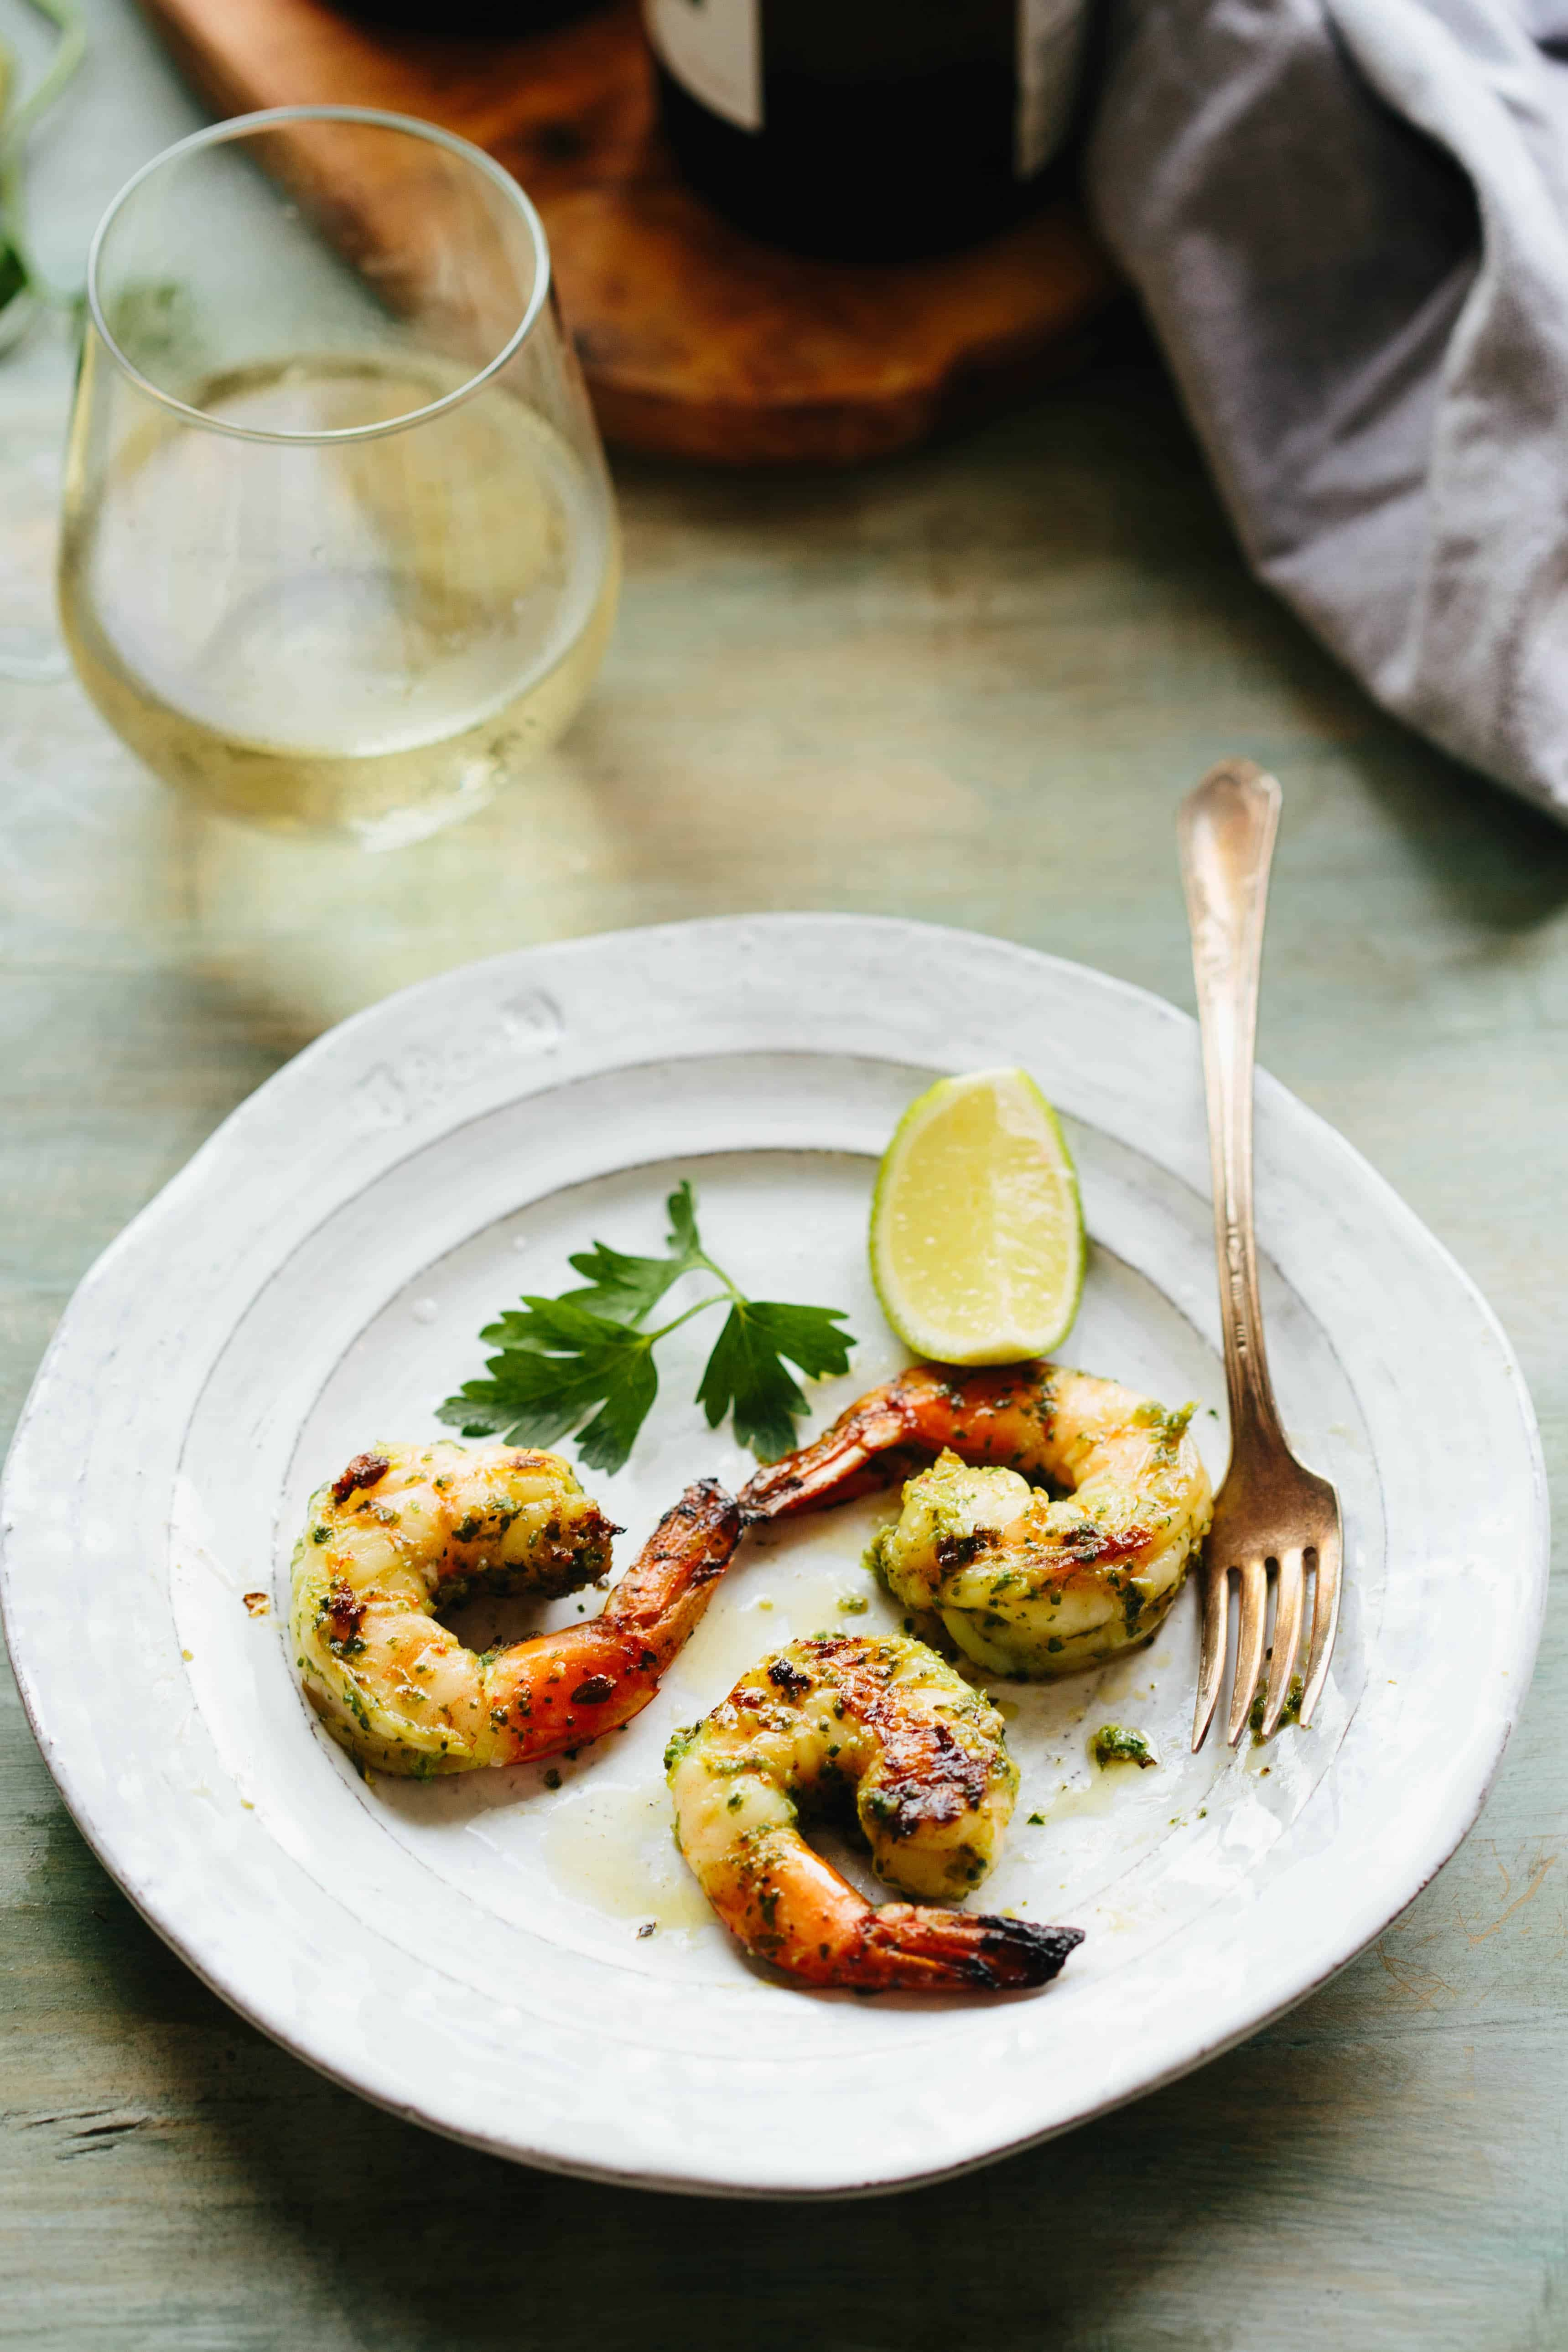 Citrus Herb Grilled Shrimp | This quick and easy recipe for Citrus Herb Grilled Shrimp is an insanely delicious flavor-packed summer meal. | ColeyCooks.com